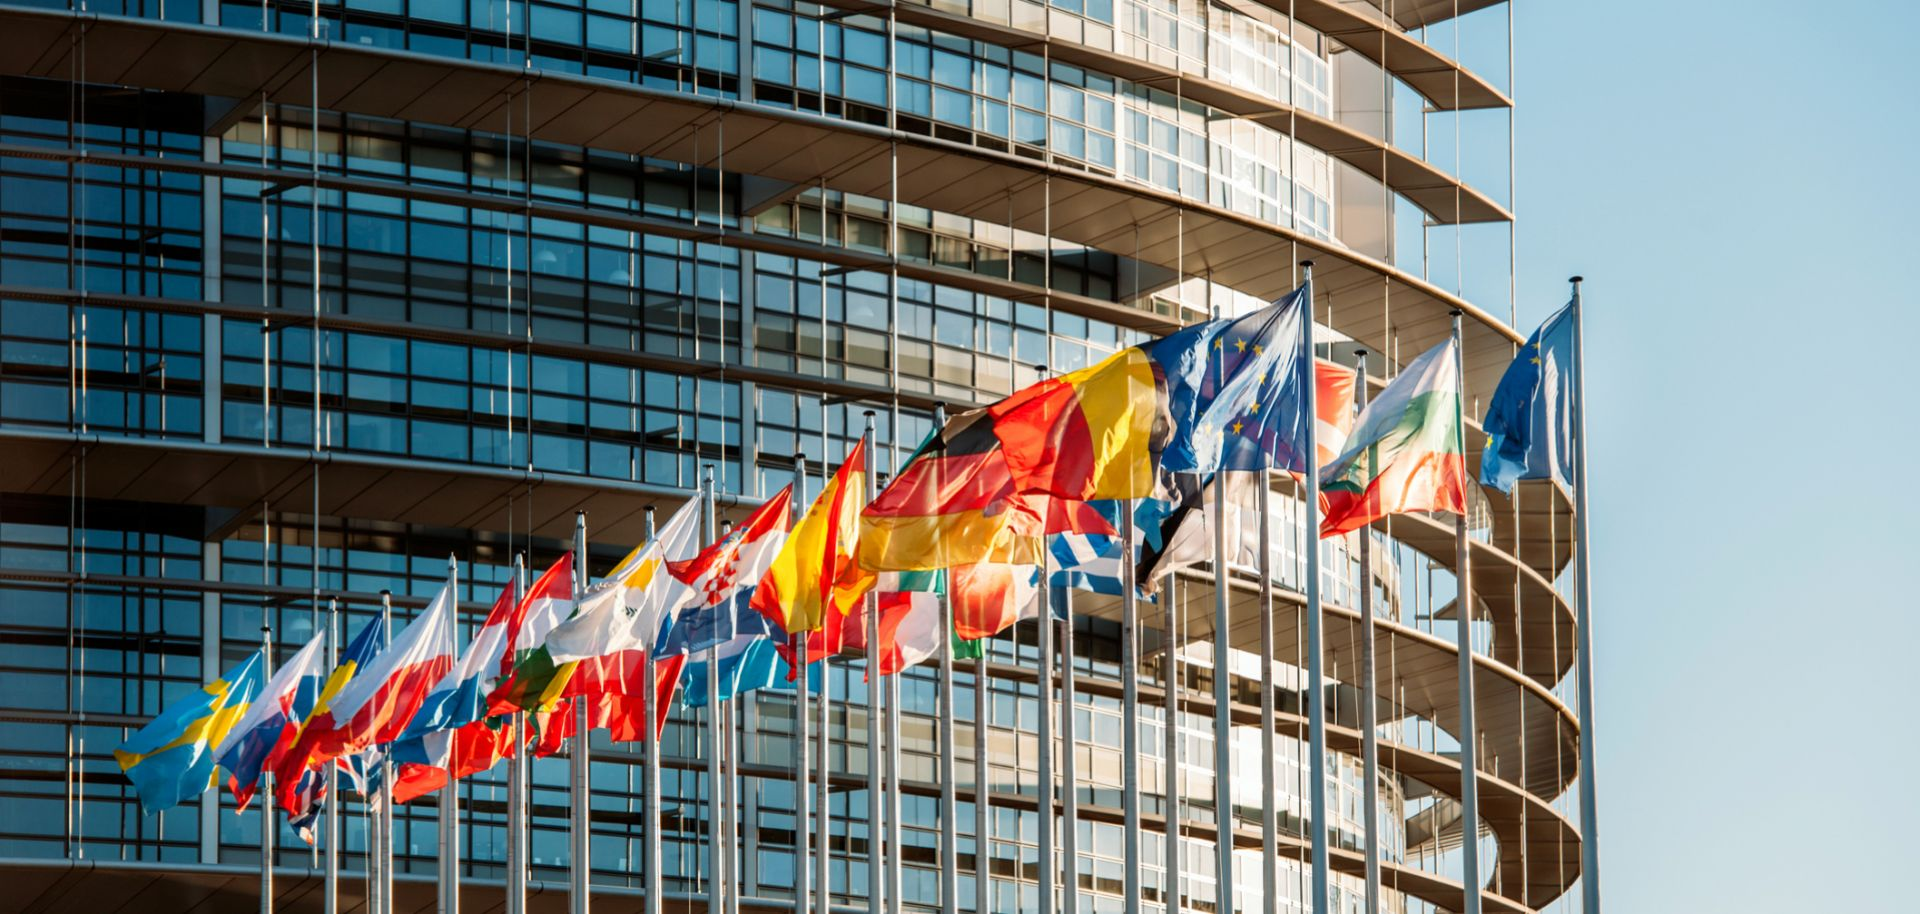 Flags wave in front of the European Parliament building in Strasbourg, France.